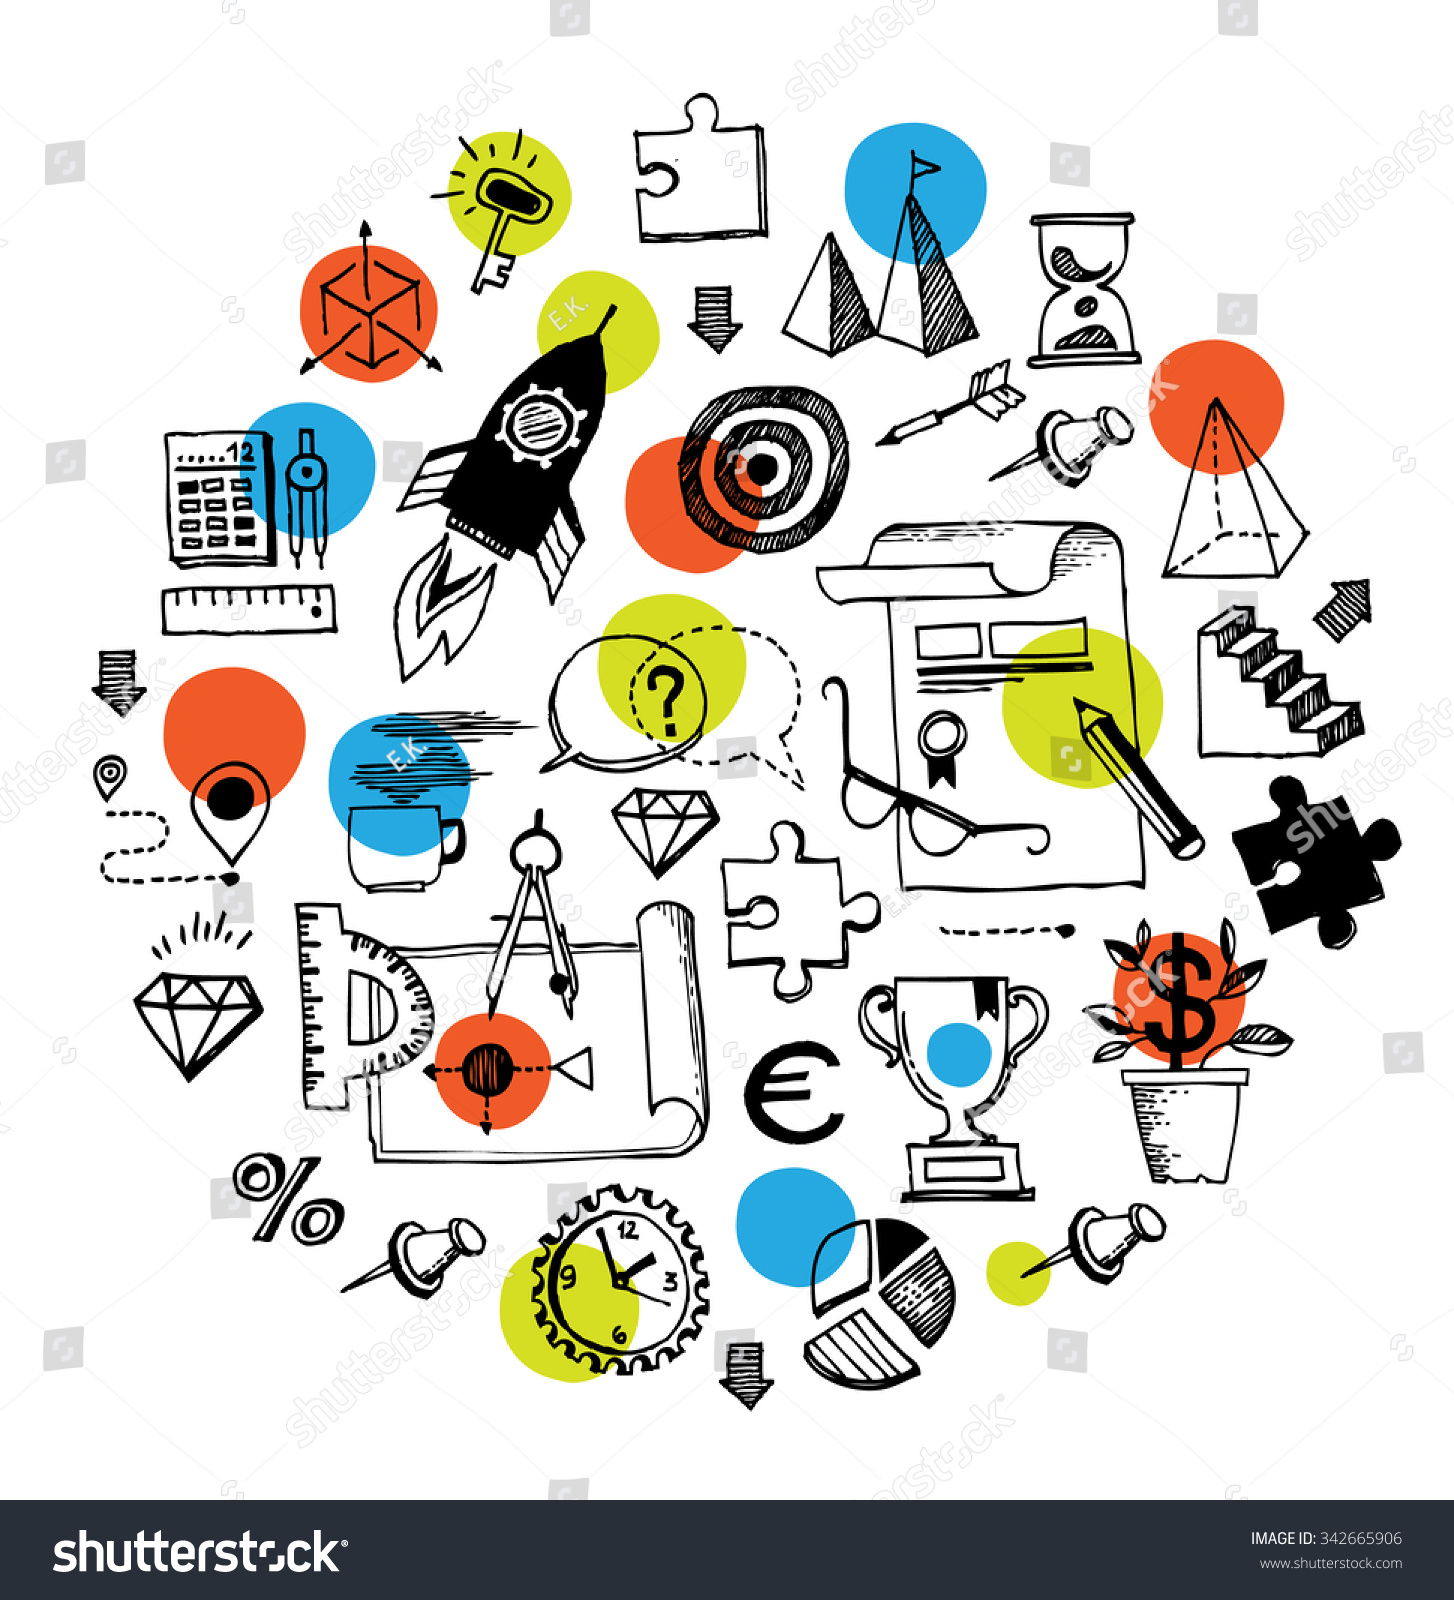 Set hand drawn doodles symbols business stock vector 342665906 set of hand drawn doodles with symbols of business and office life including pie chart geenschuldenfo Choice Image